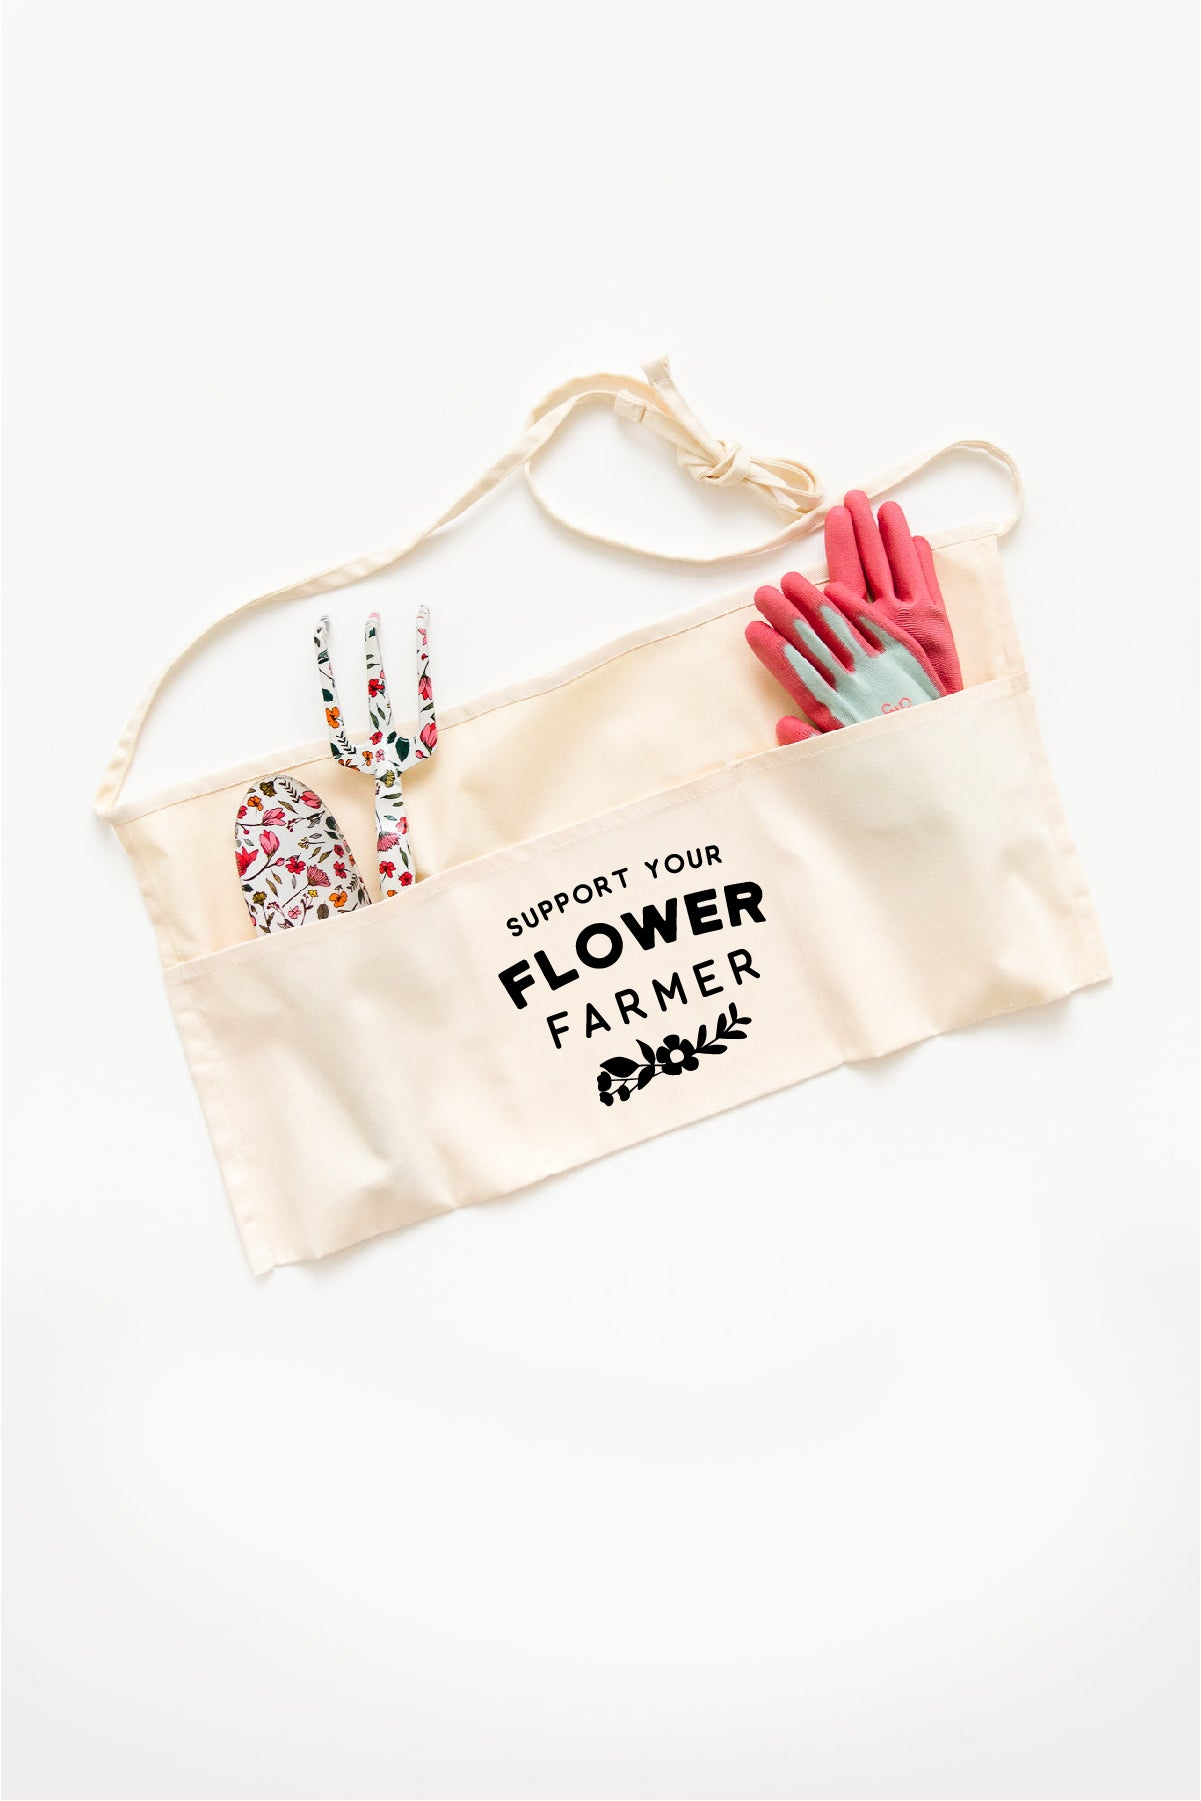 Flower Farmer Apron